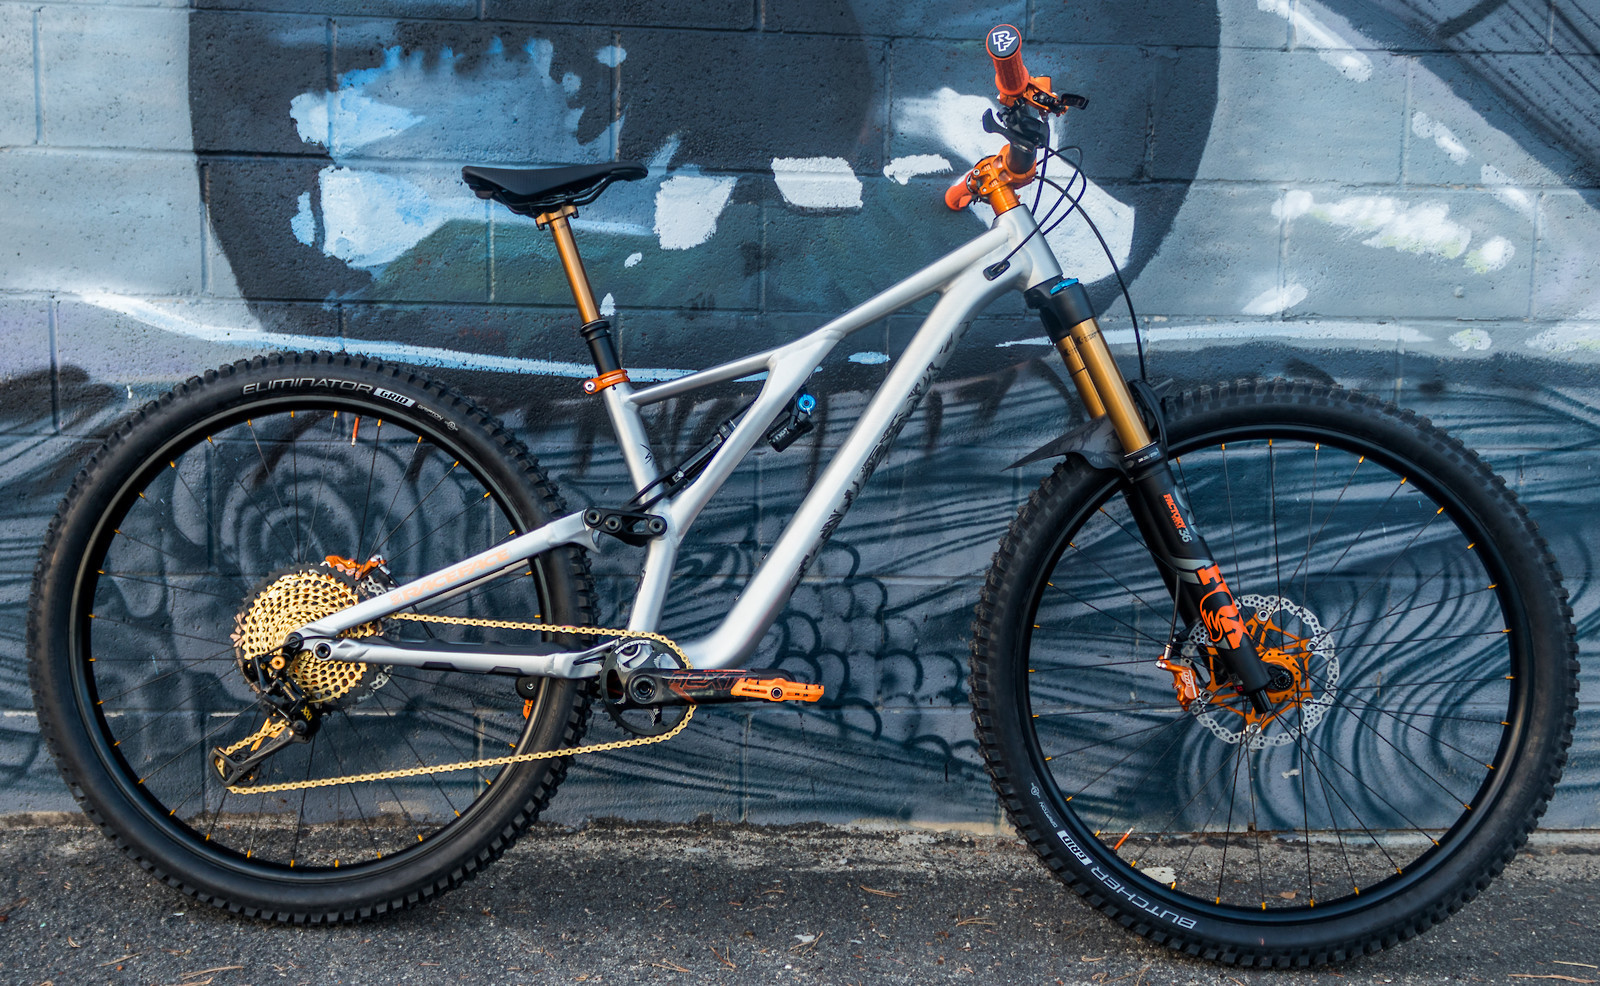 Specialized Stumpjumper 29 EVO - 2019 Vital Bike of the Day Collection - Mountain Biking Pictures - Vital MTB